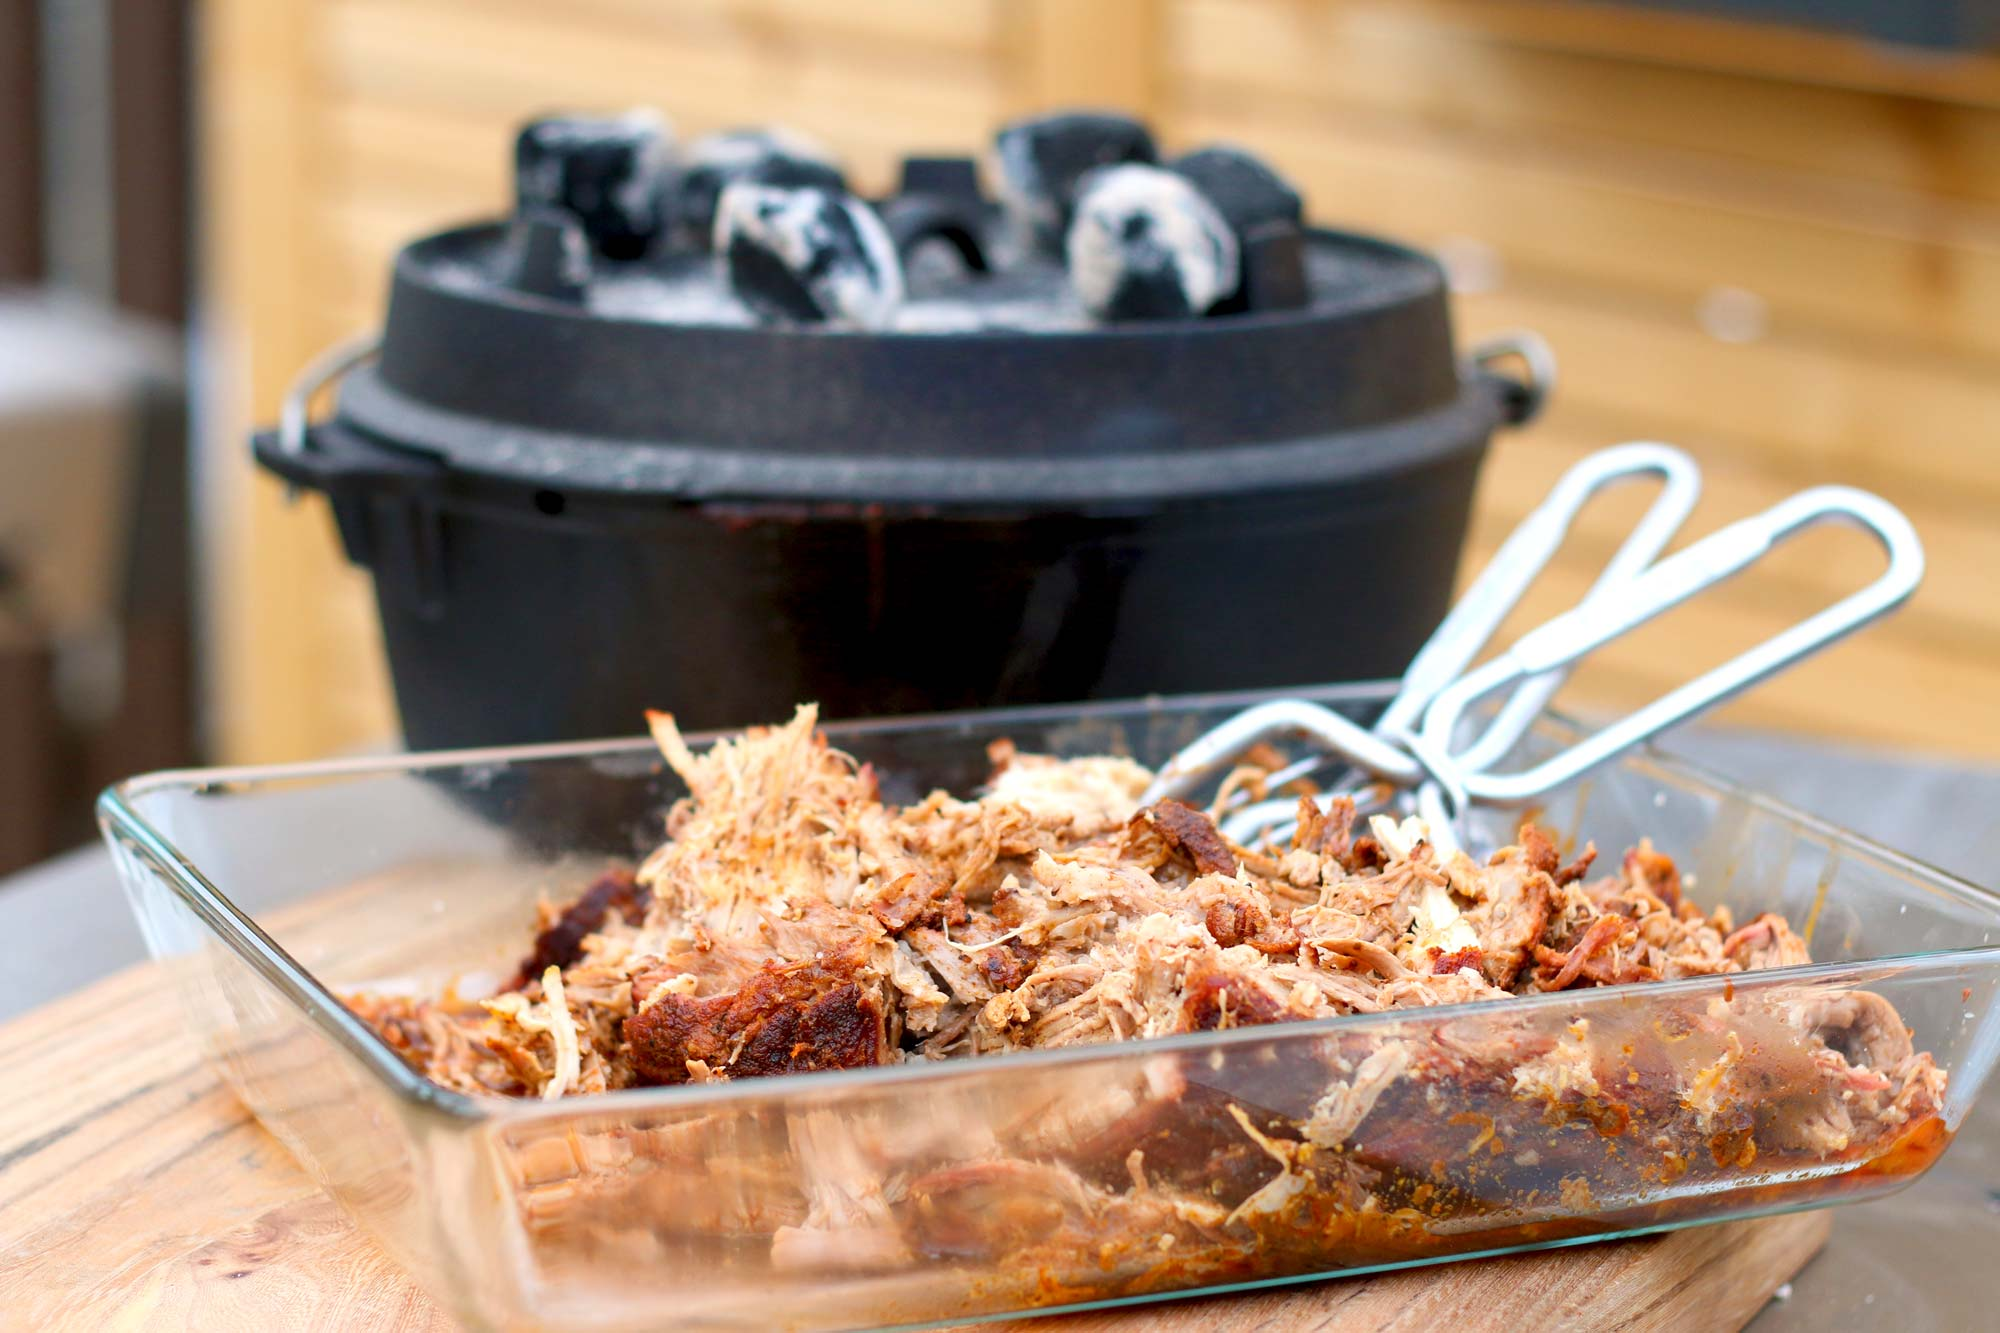 Pulled Pork Gasgrill Kerntemperatur : Pulled pork aus dem dutch oven highspeed pp in 4 h